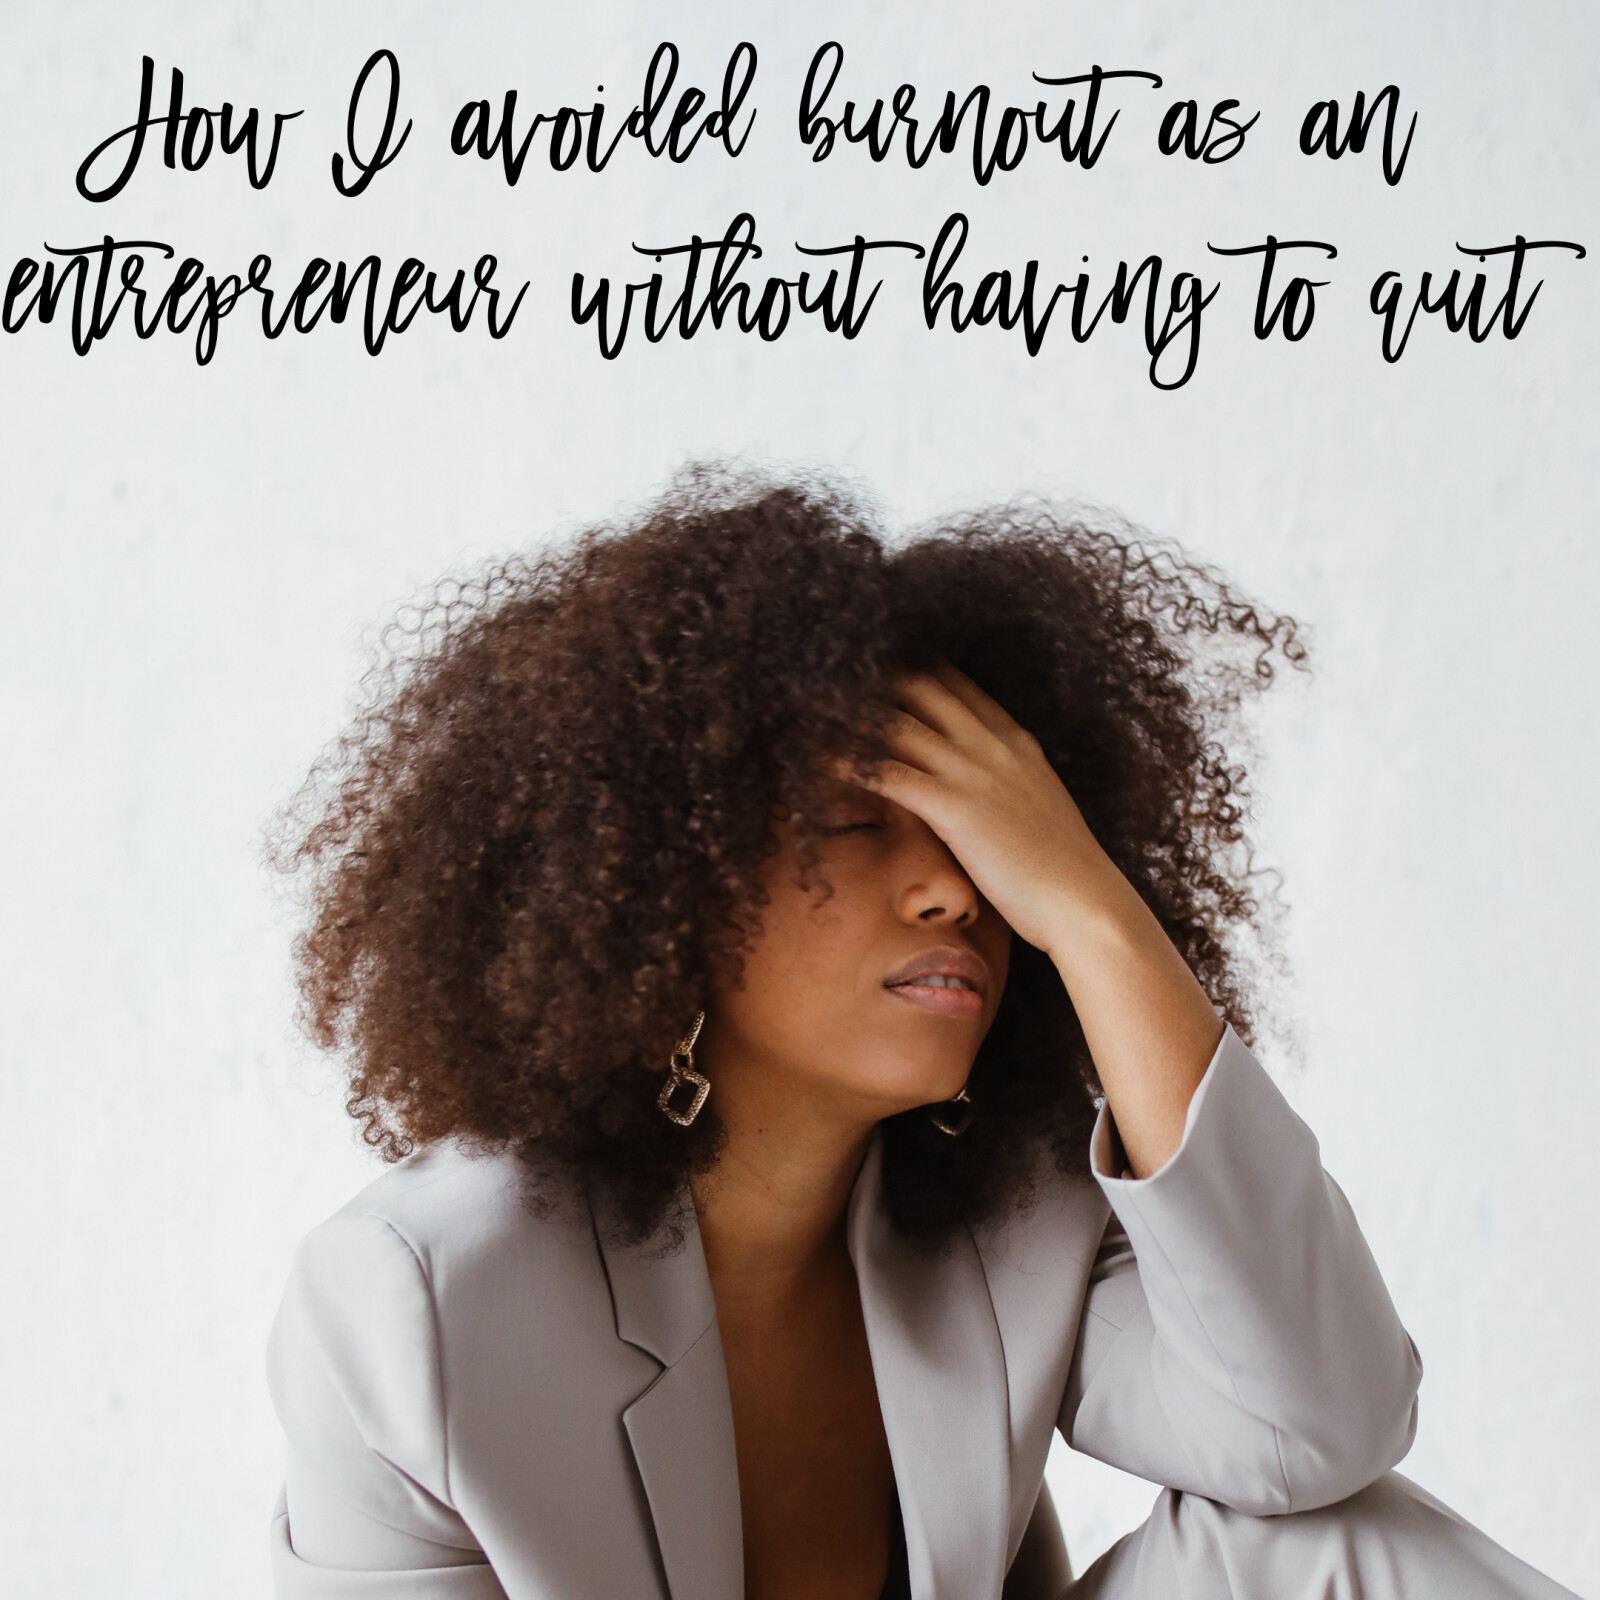 How I avoided burnout as an entrepreneur without quitting